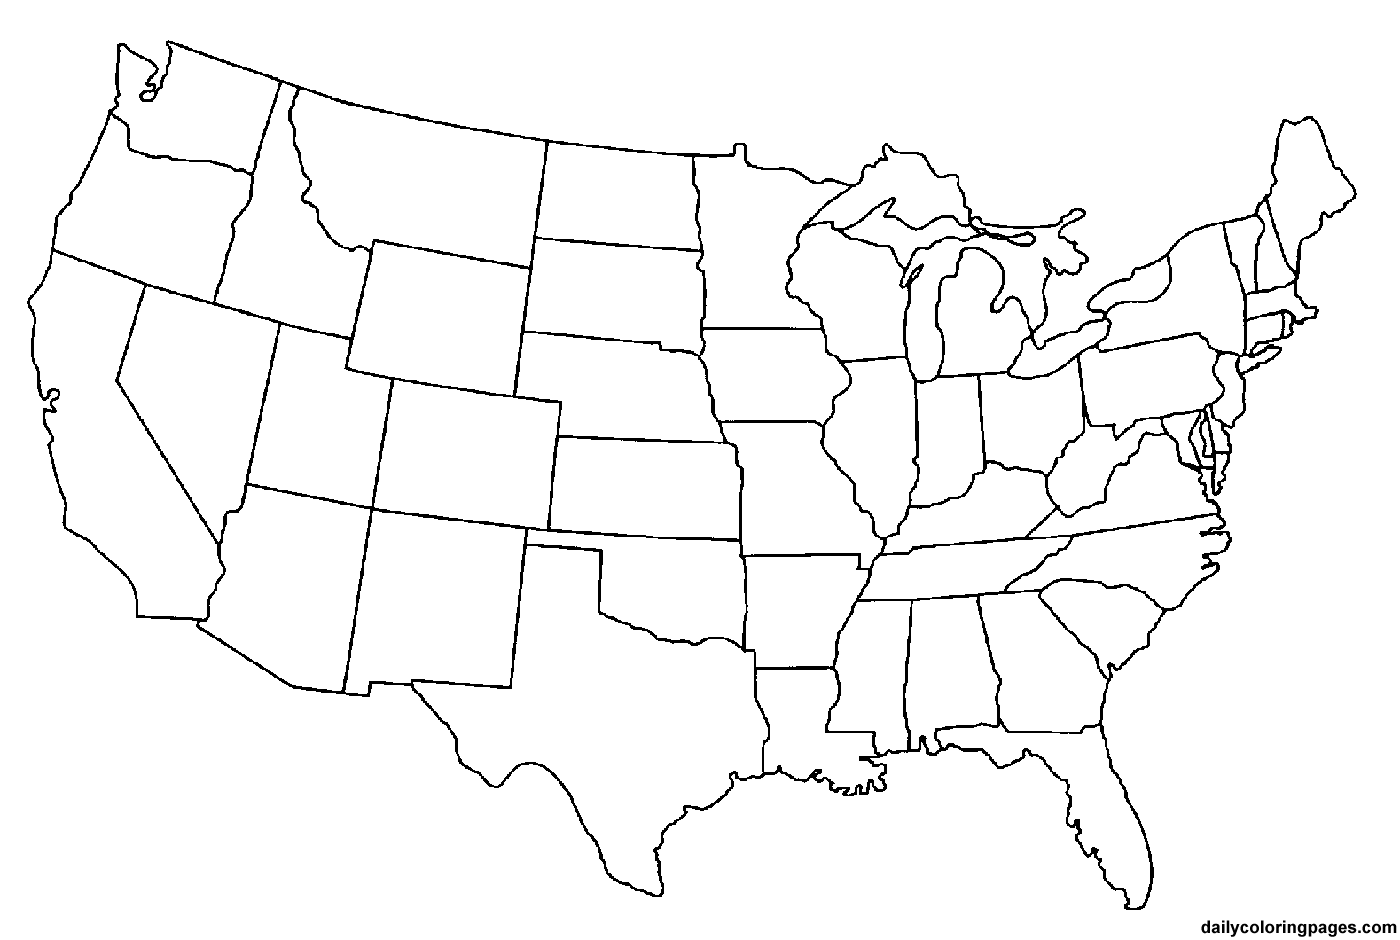 map of the united states coloring page us map america free printable coloring pages page states coloring of map the united